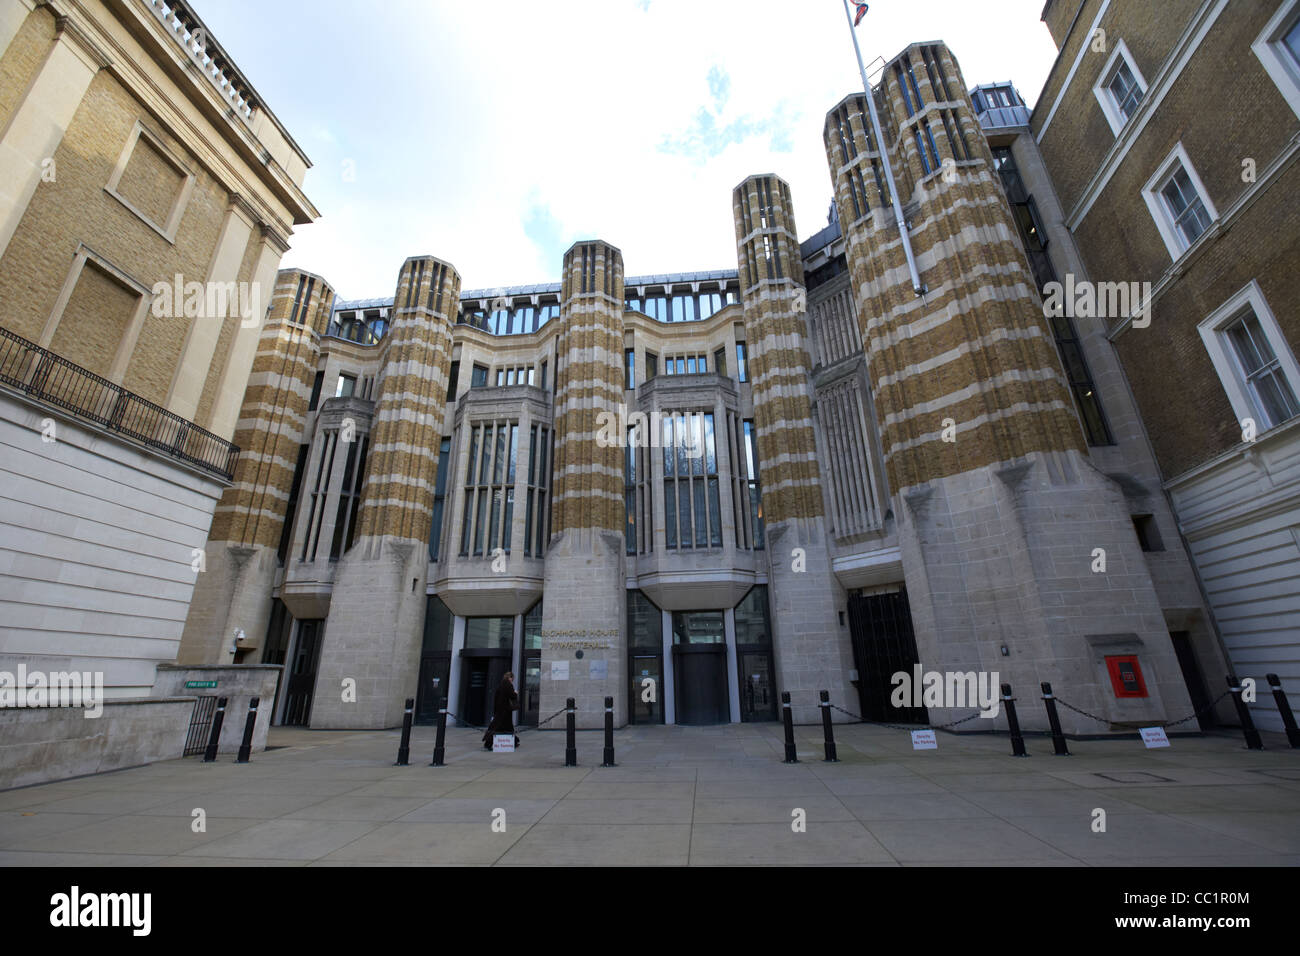 richmond house headquarters of the department of health and social care whitehall London England UK United kingdom - Stock Image